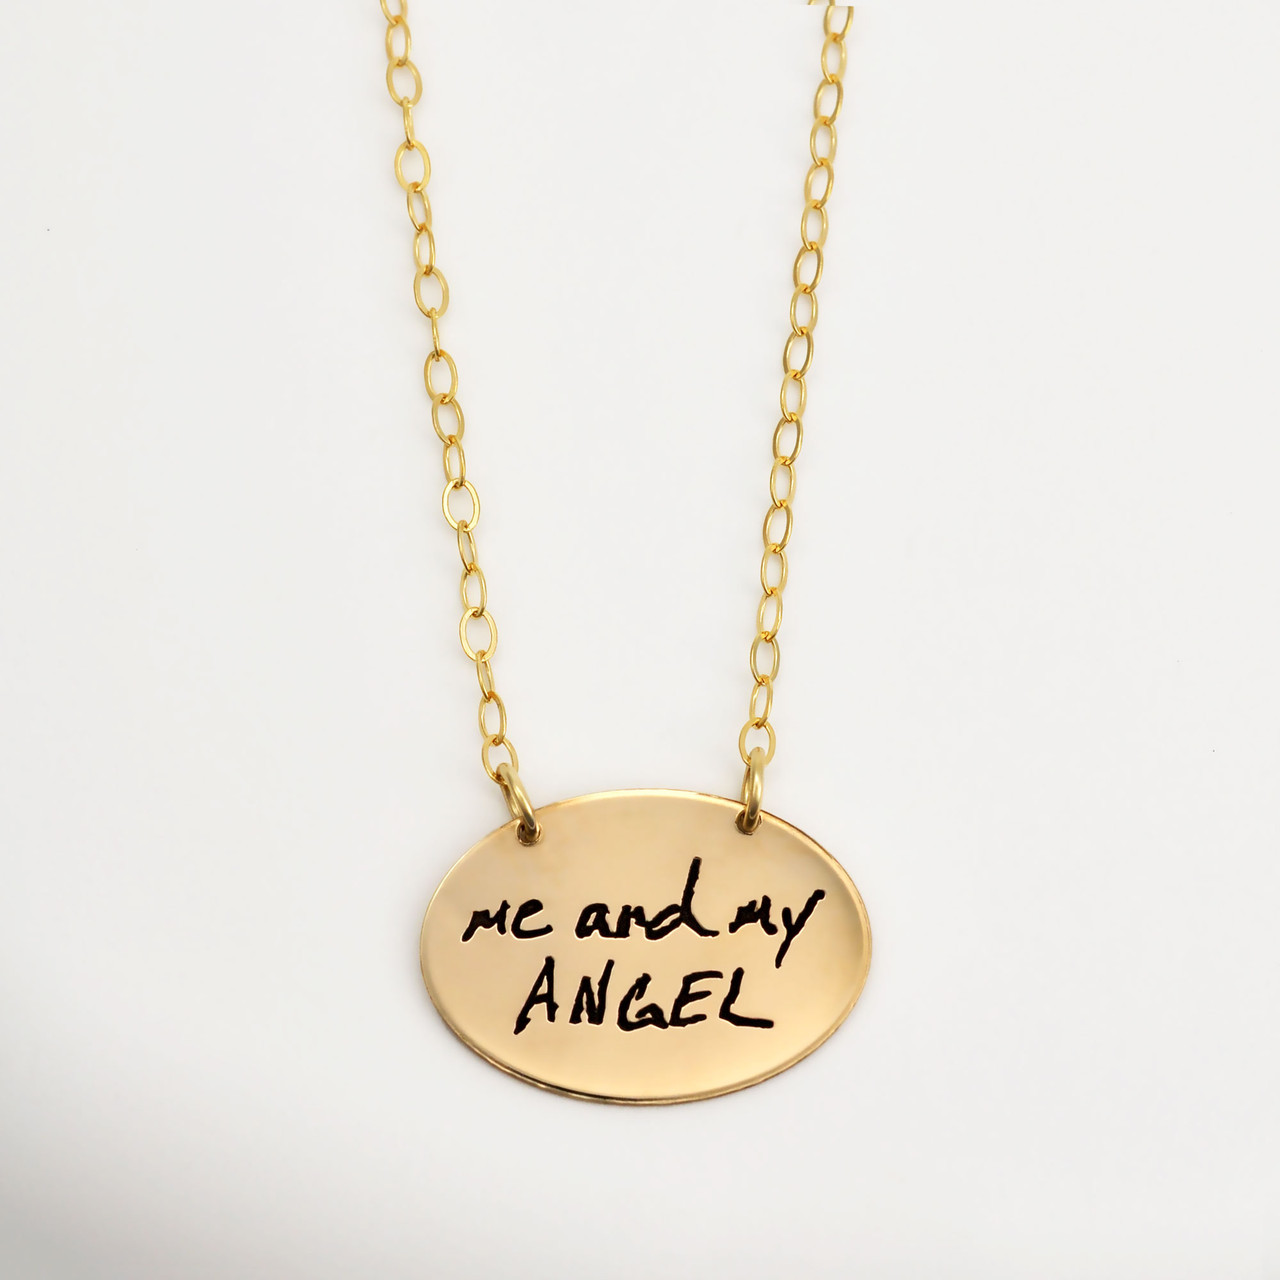 Gold oval necklace with your actual handwriting, shown on white